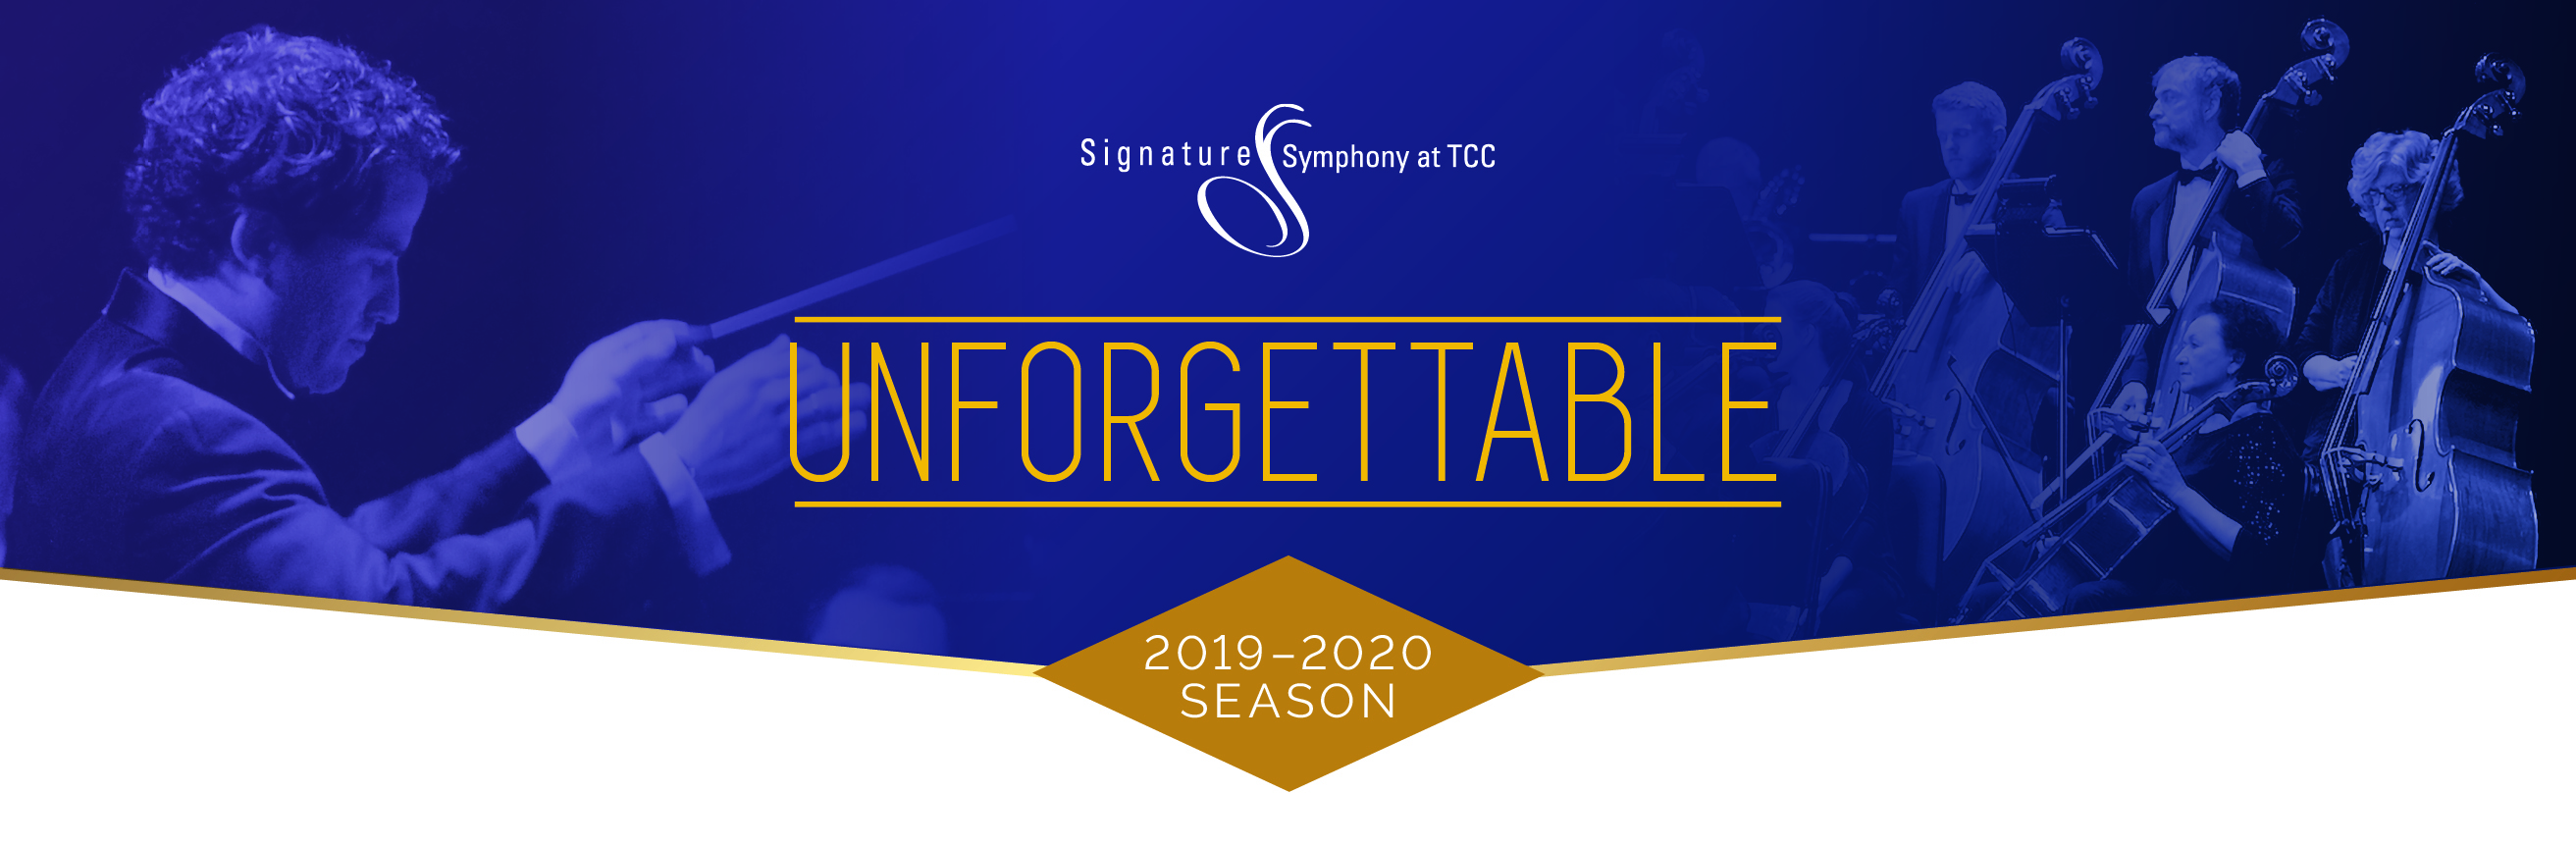 Unforgettable 2019-2020 Season